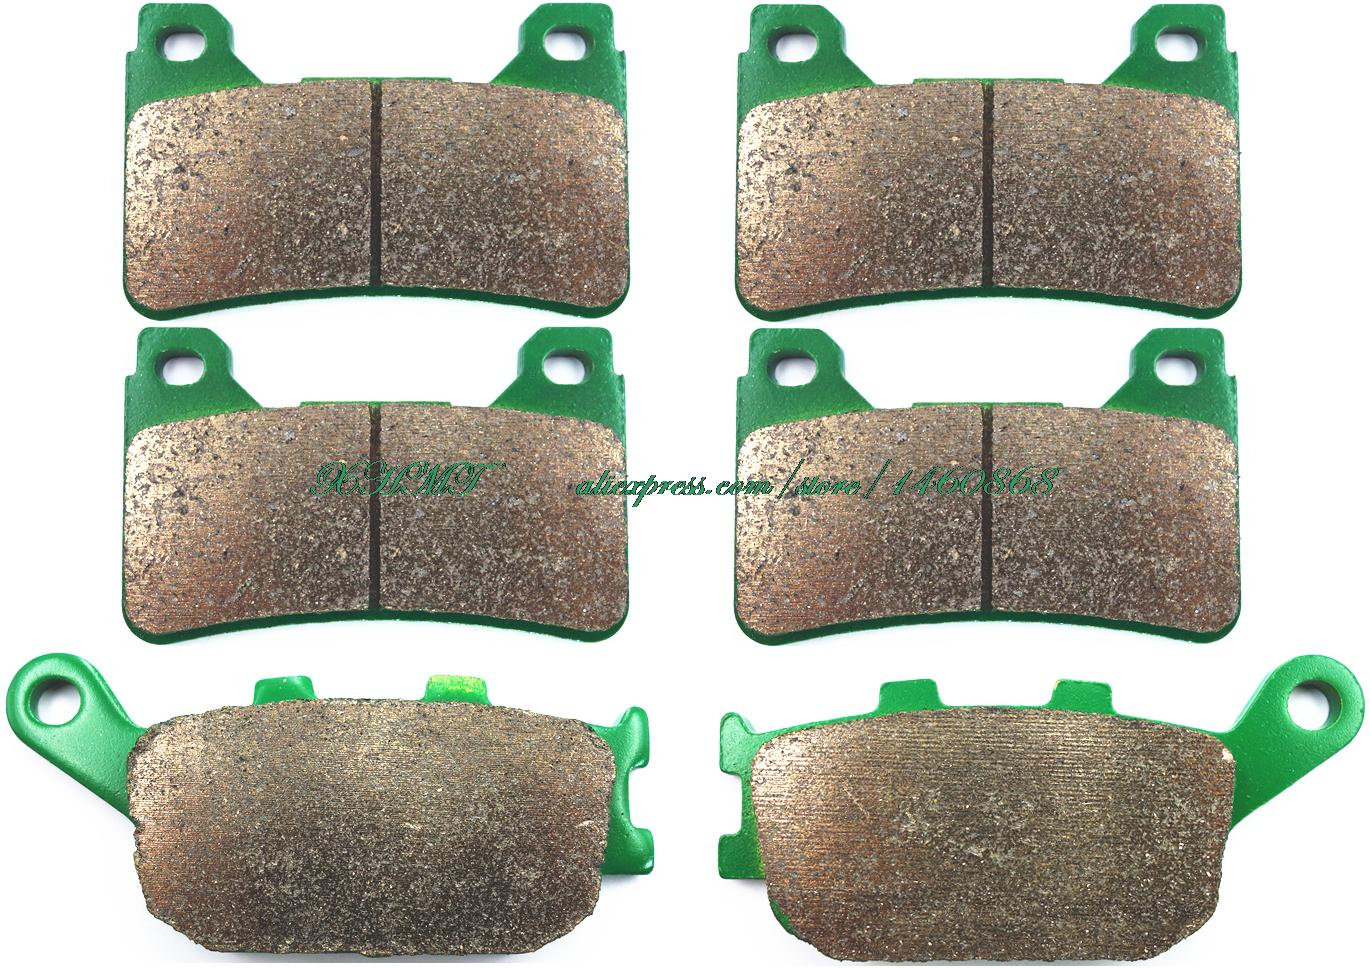 Brake Pads Set For Honda Cbr600rr Cbr 600 Rr & Racing Applications 2005 2006